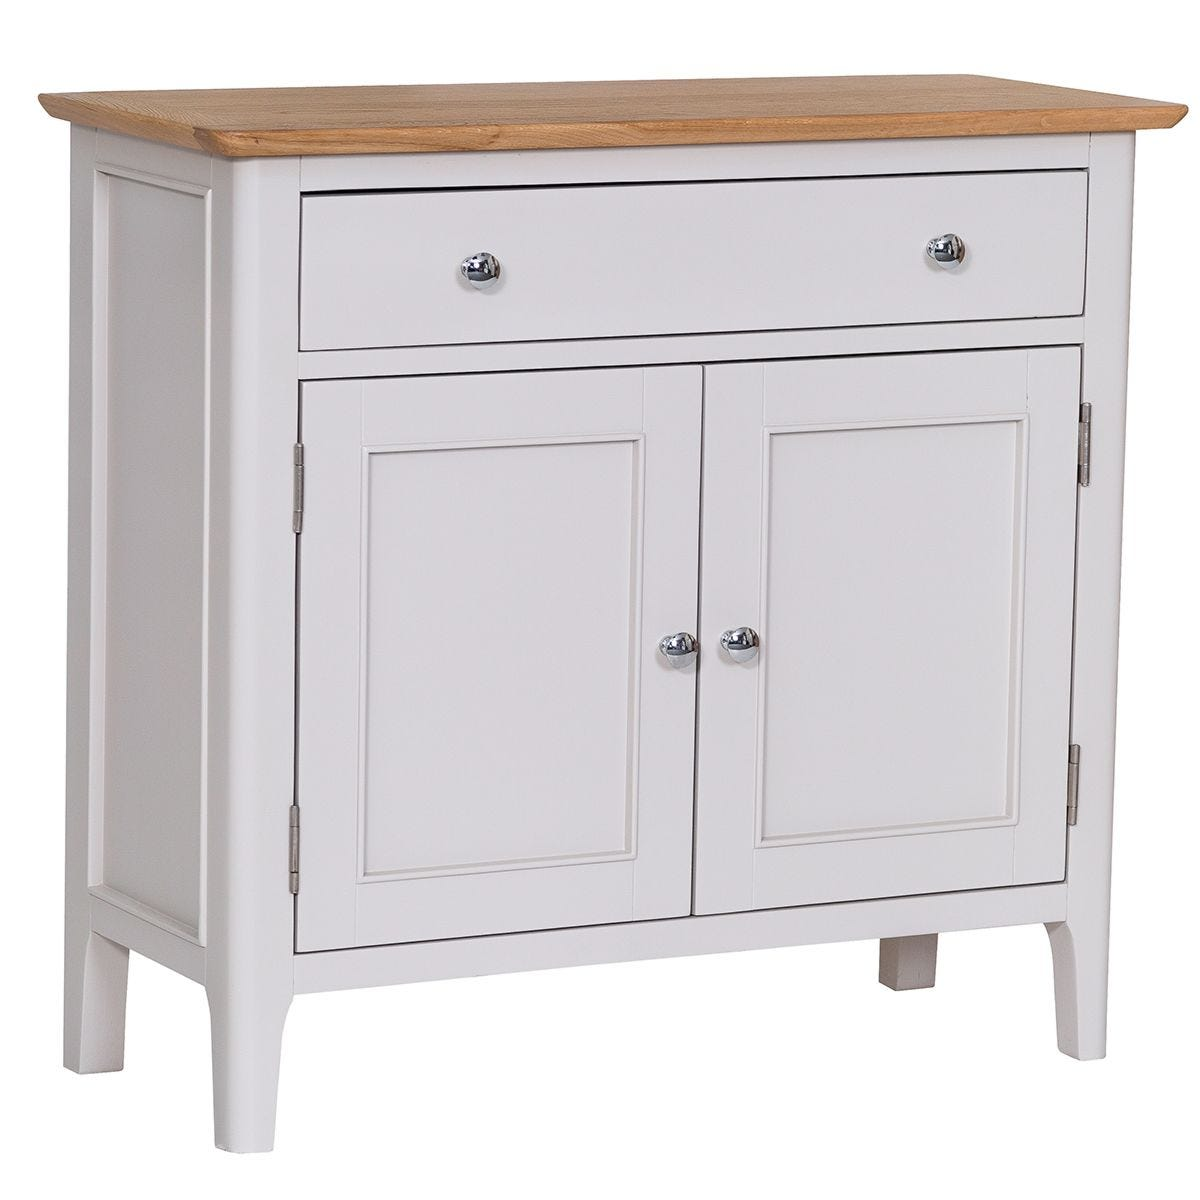 Notswood Small Sideboard